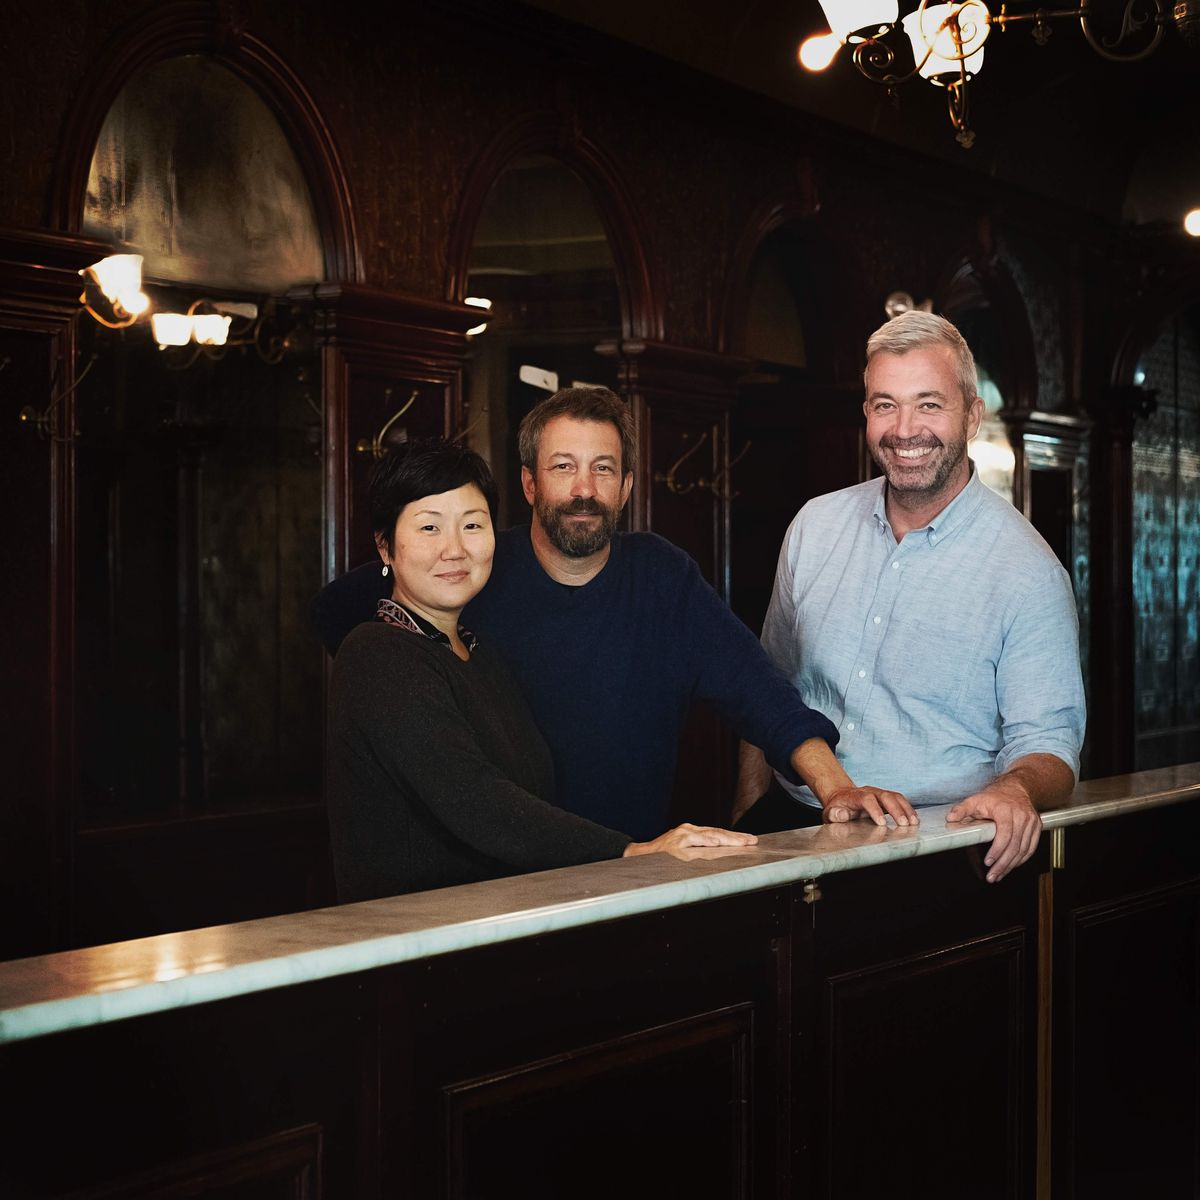 Sohui Kim, Ben Schneider, and St. John Frizell stand at the bar in a wood-lined space